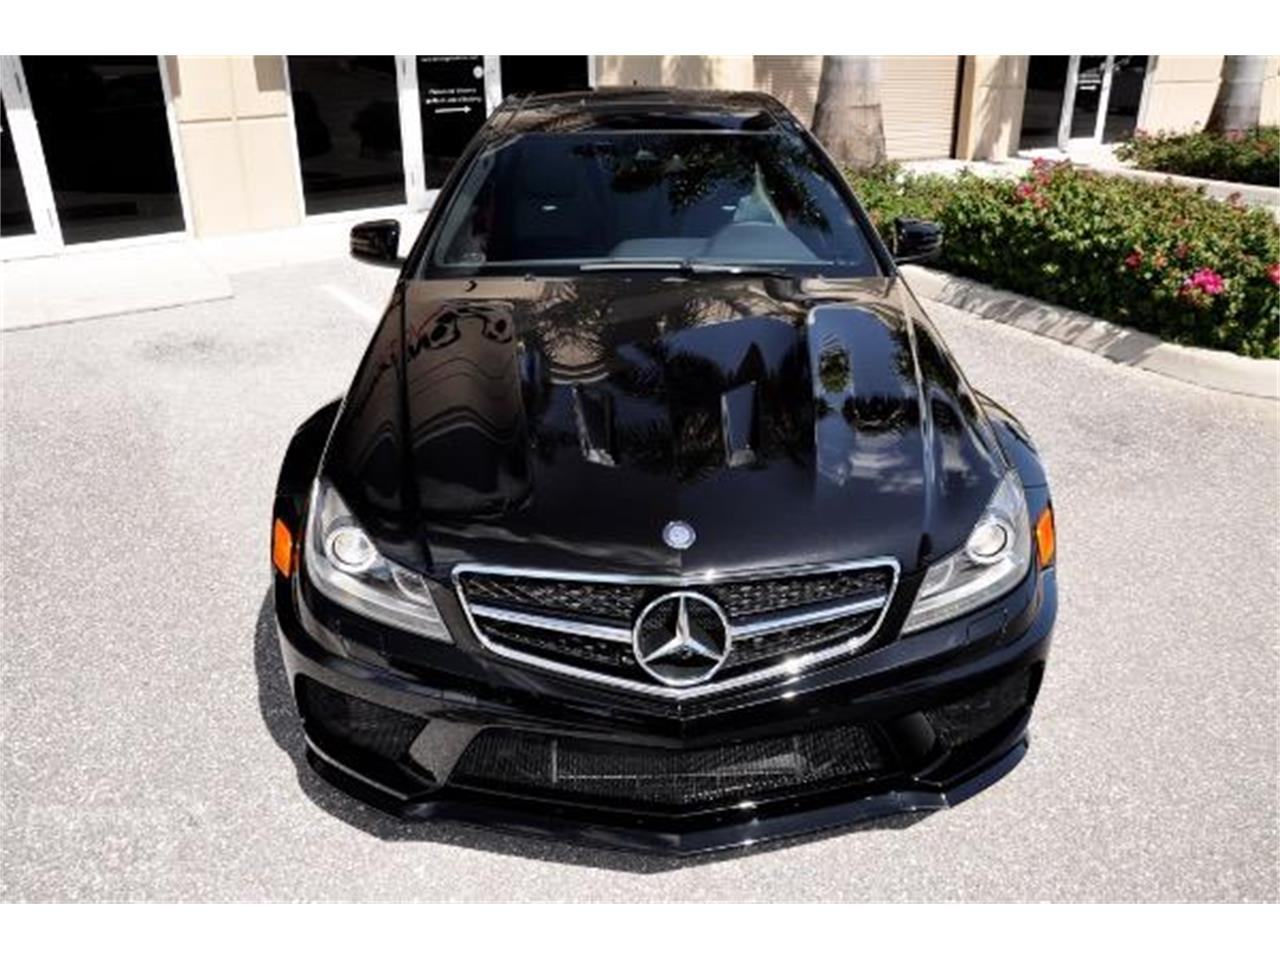 2013 Mercedes-Benz C63 AMG for sale in West Palm Beach, FL – photo 40